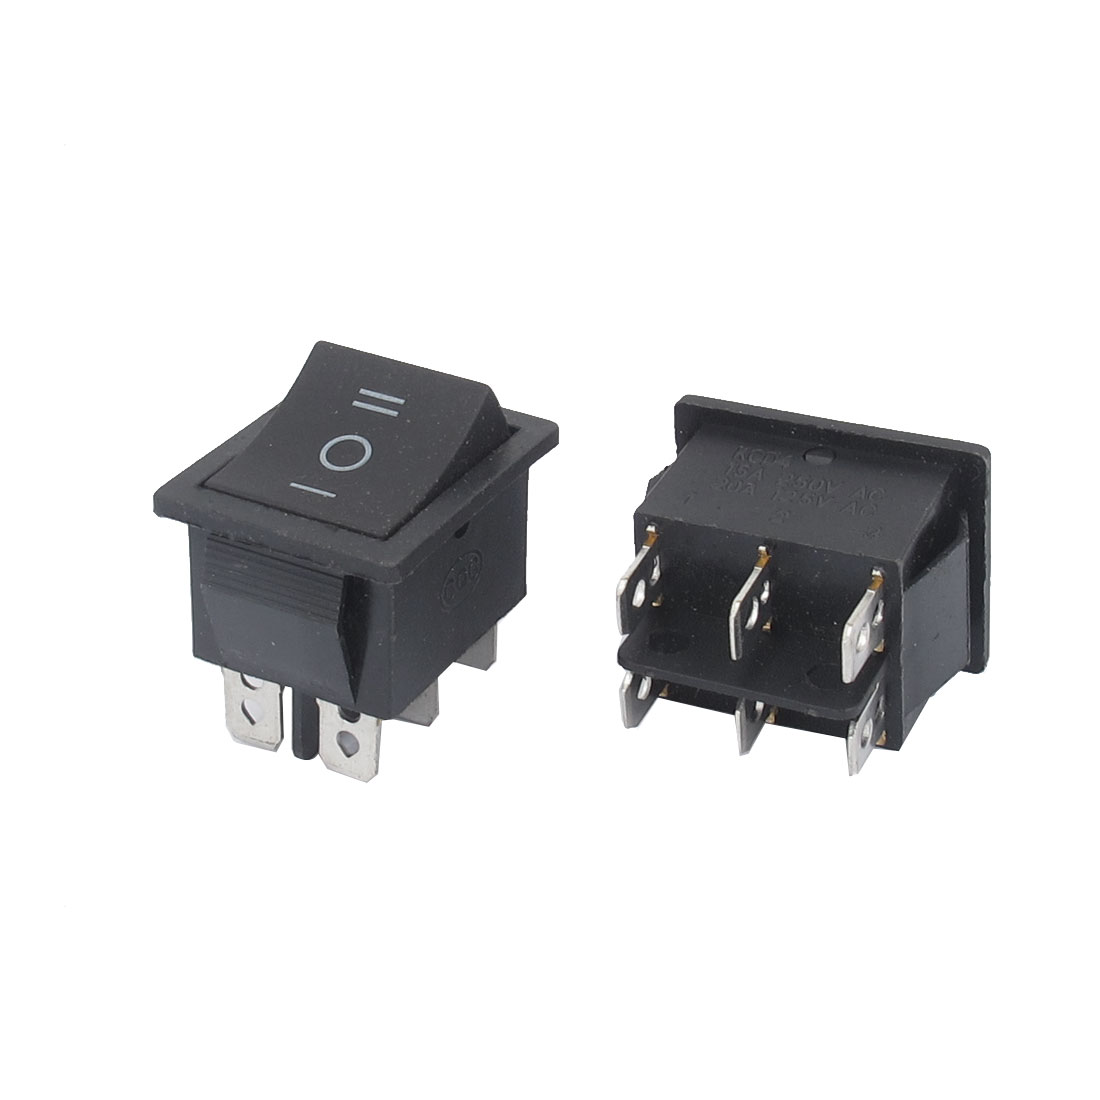 AC 250V 15A AC125V 20A 6 Terminal 3 Position DPDT Snap in Mount Rocker Boat Switch 2pcs